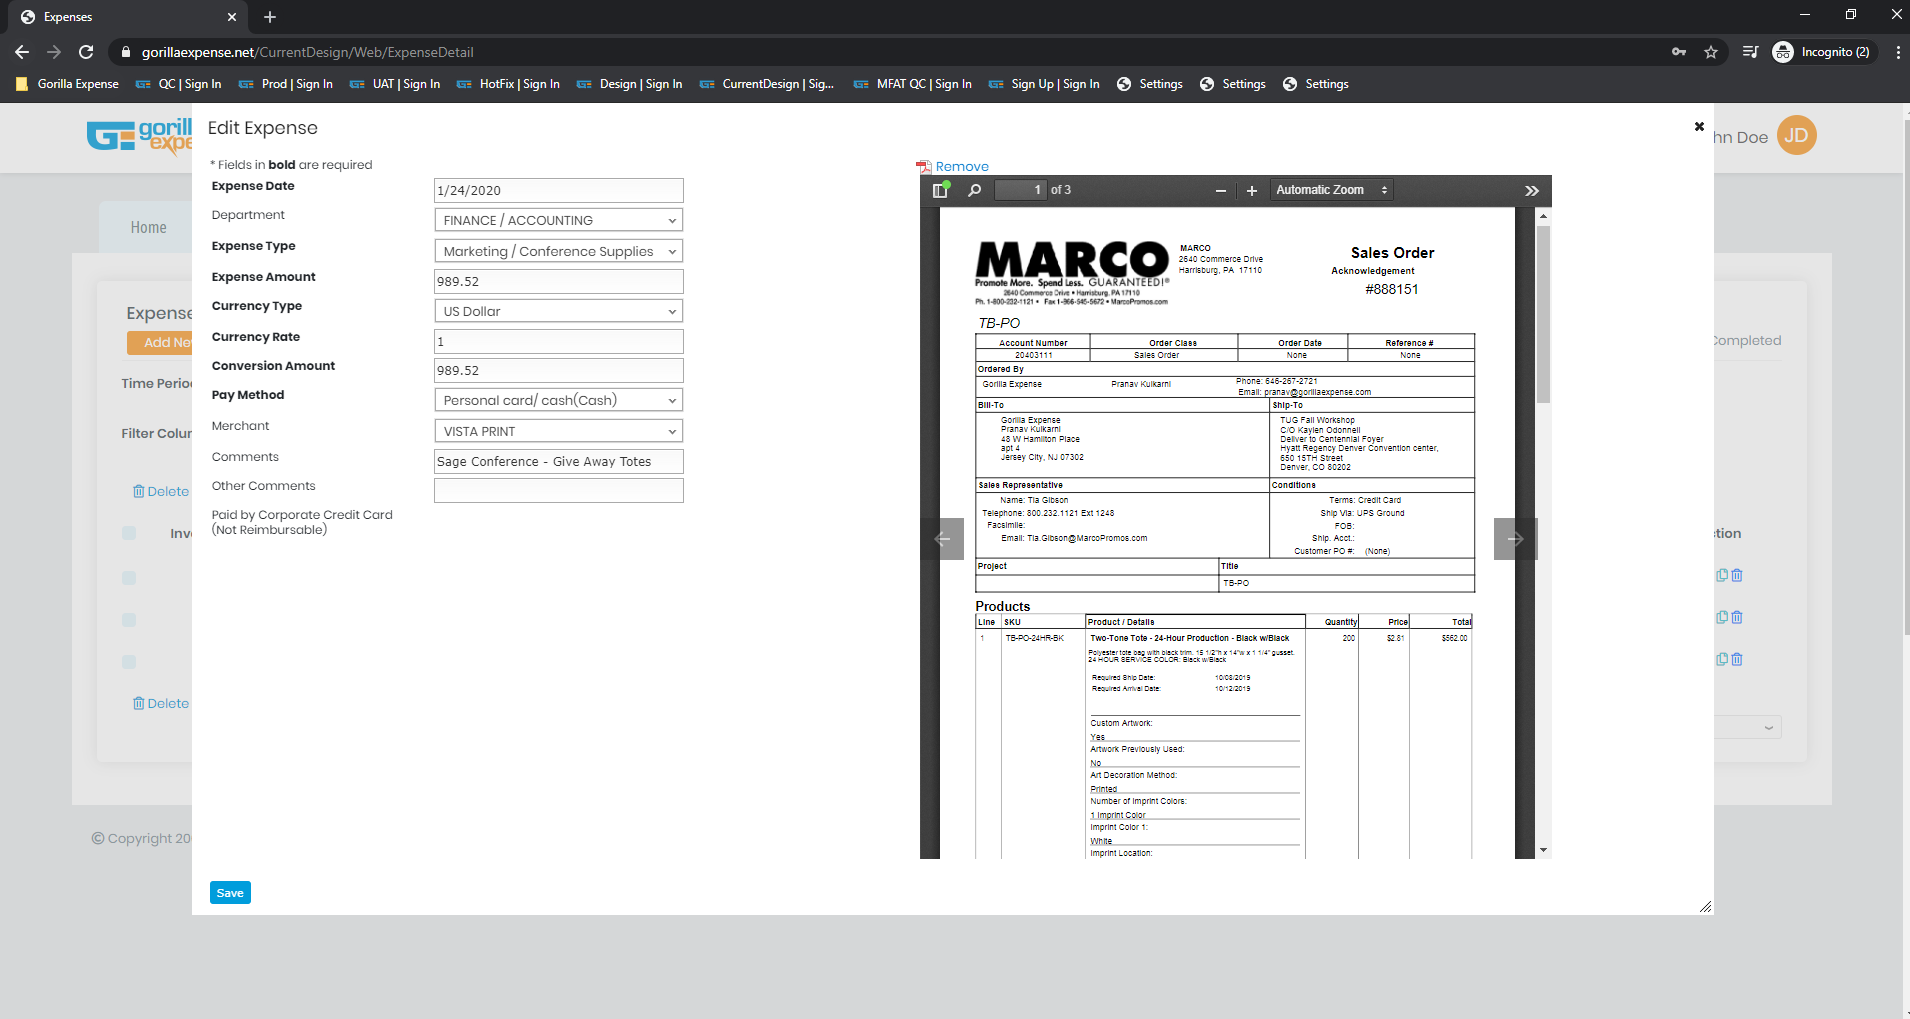 Edit Expense Page - Search dropdowns, navigate between expenses easily, receipt side-by-side view makes it easy to enter data